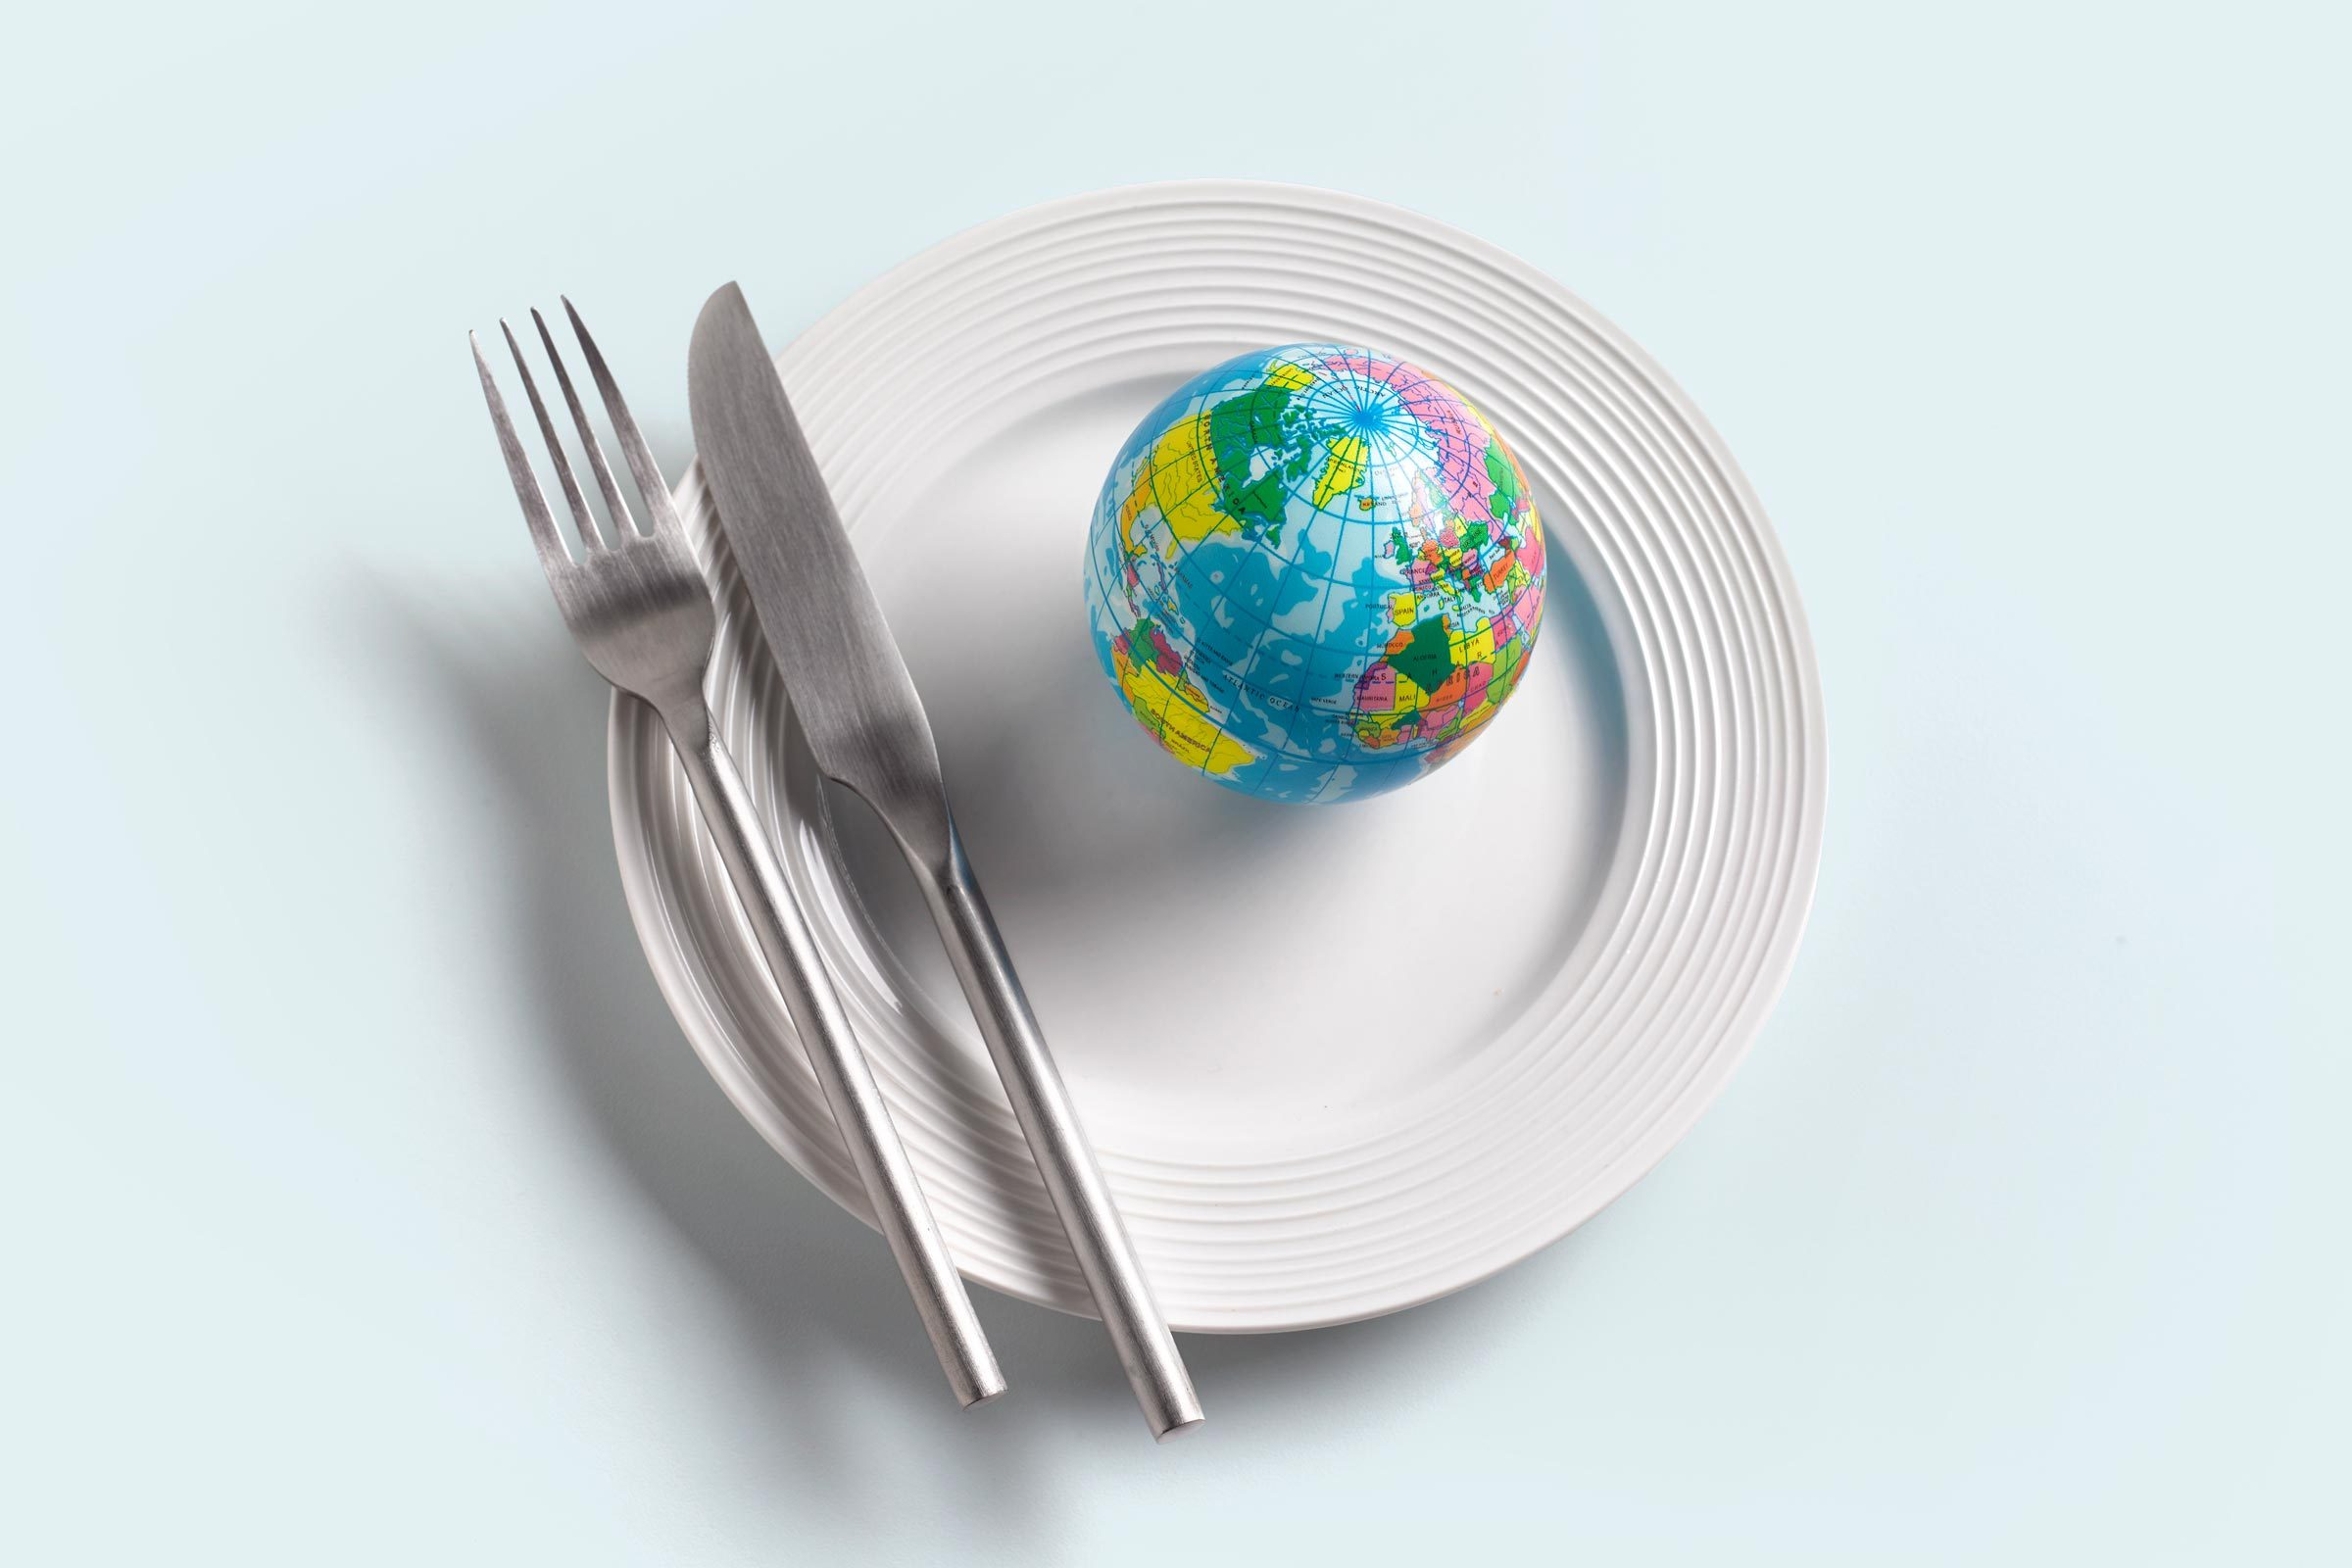 white plate with knife and fork; small globe on the plate